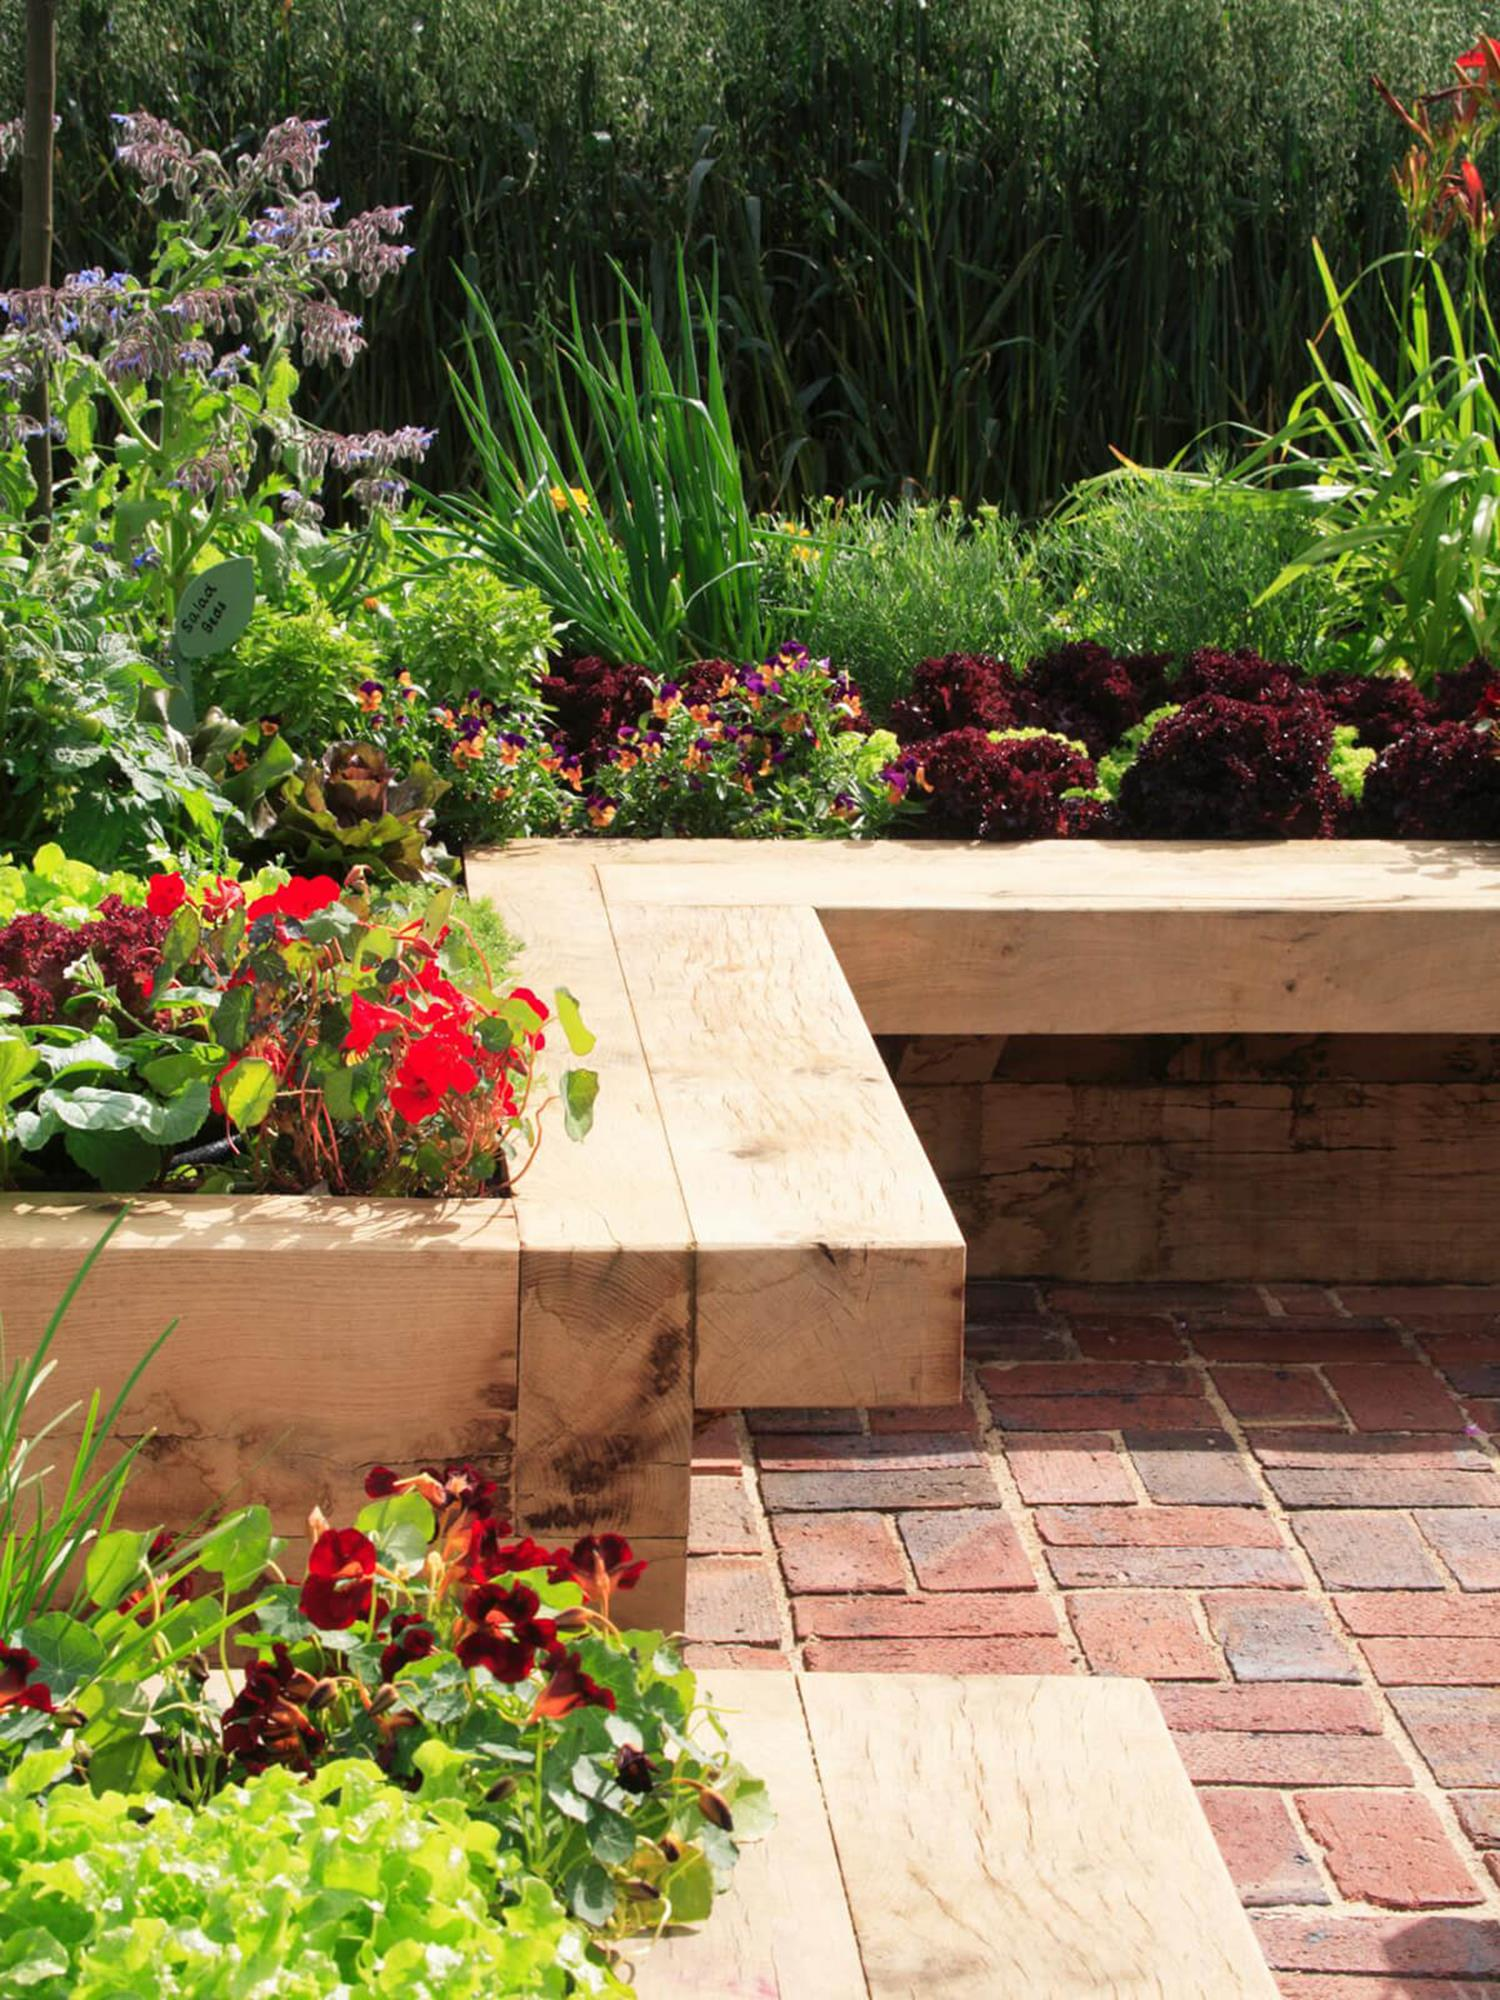 Wood Lawn Edging Ideas 28